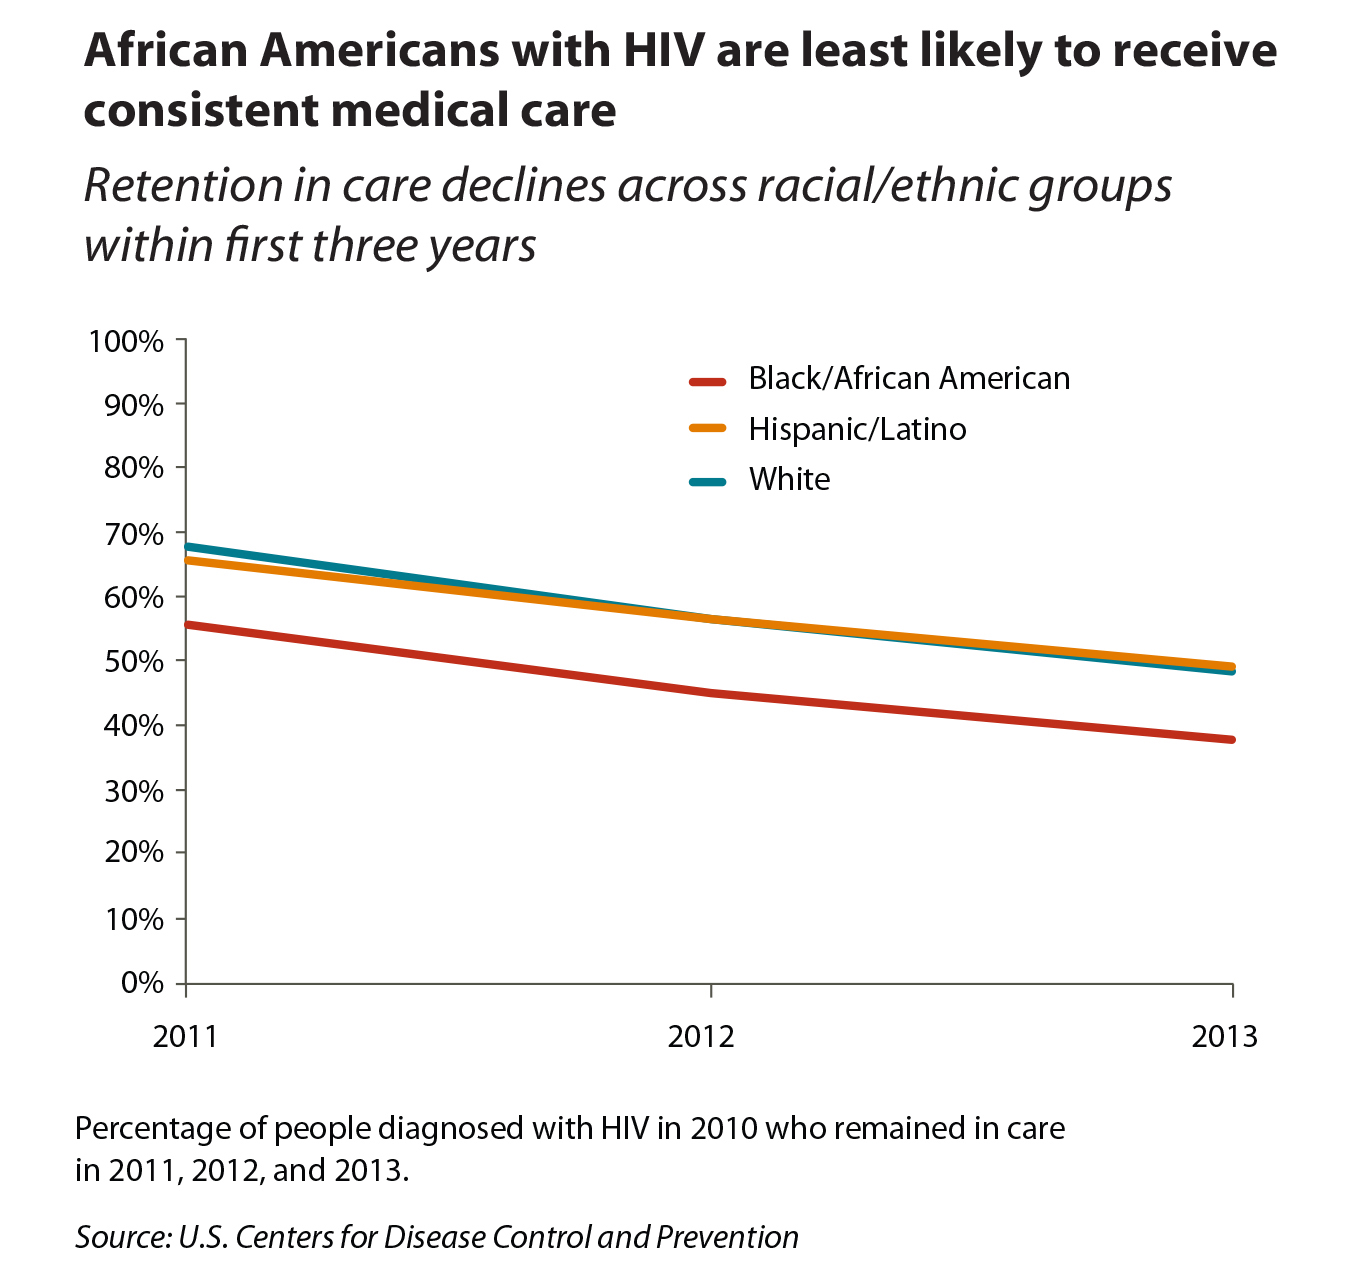 hight resolution of  graph showing african americans with hiv are least likely to receive consistent medical care compared to